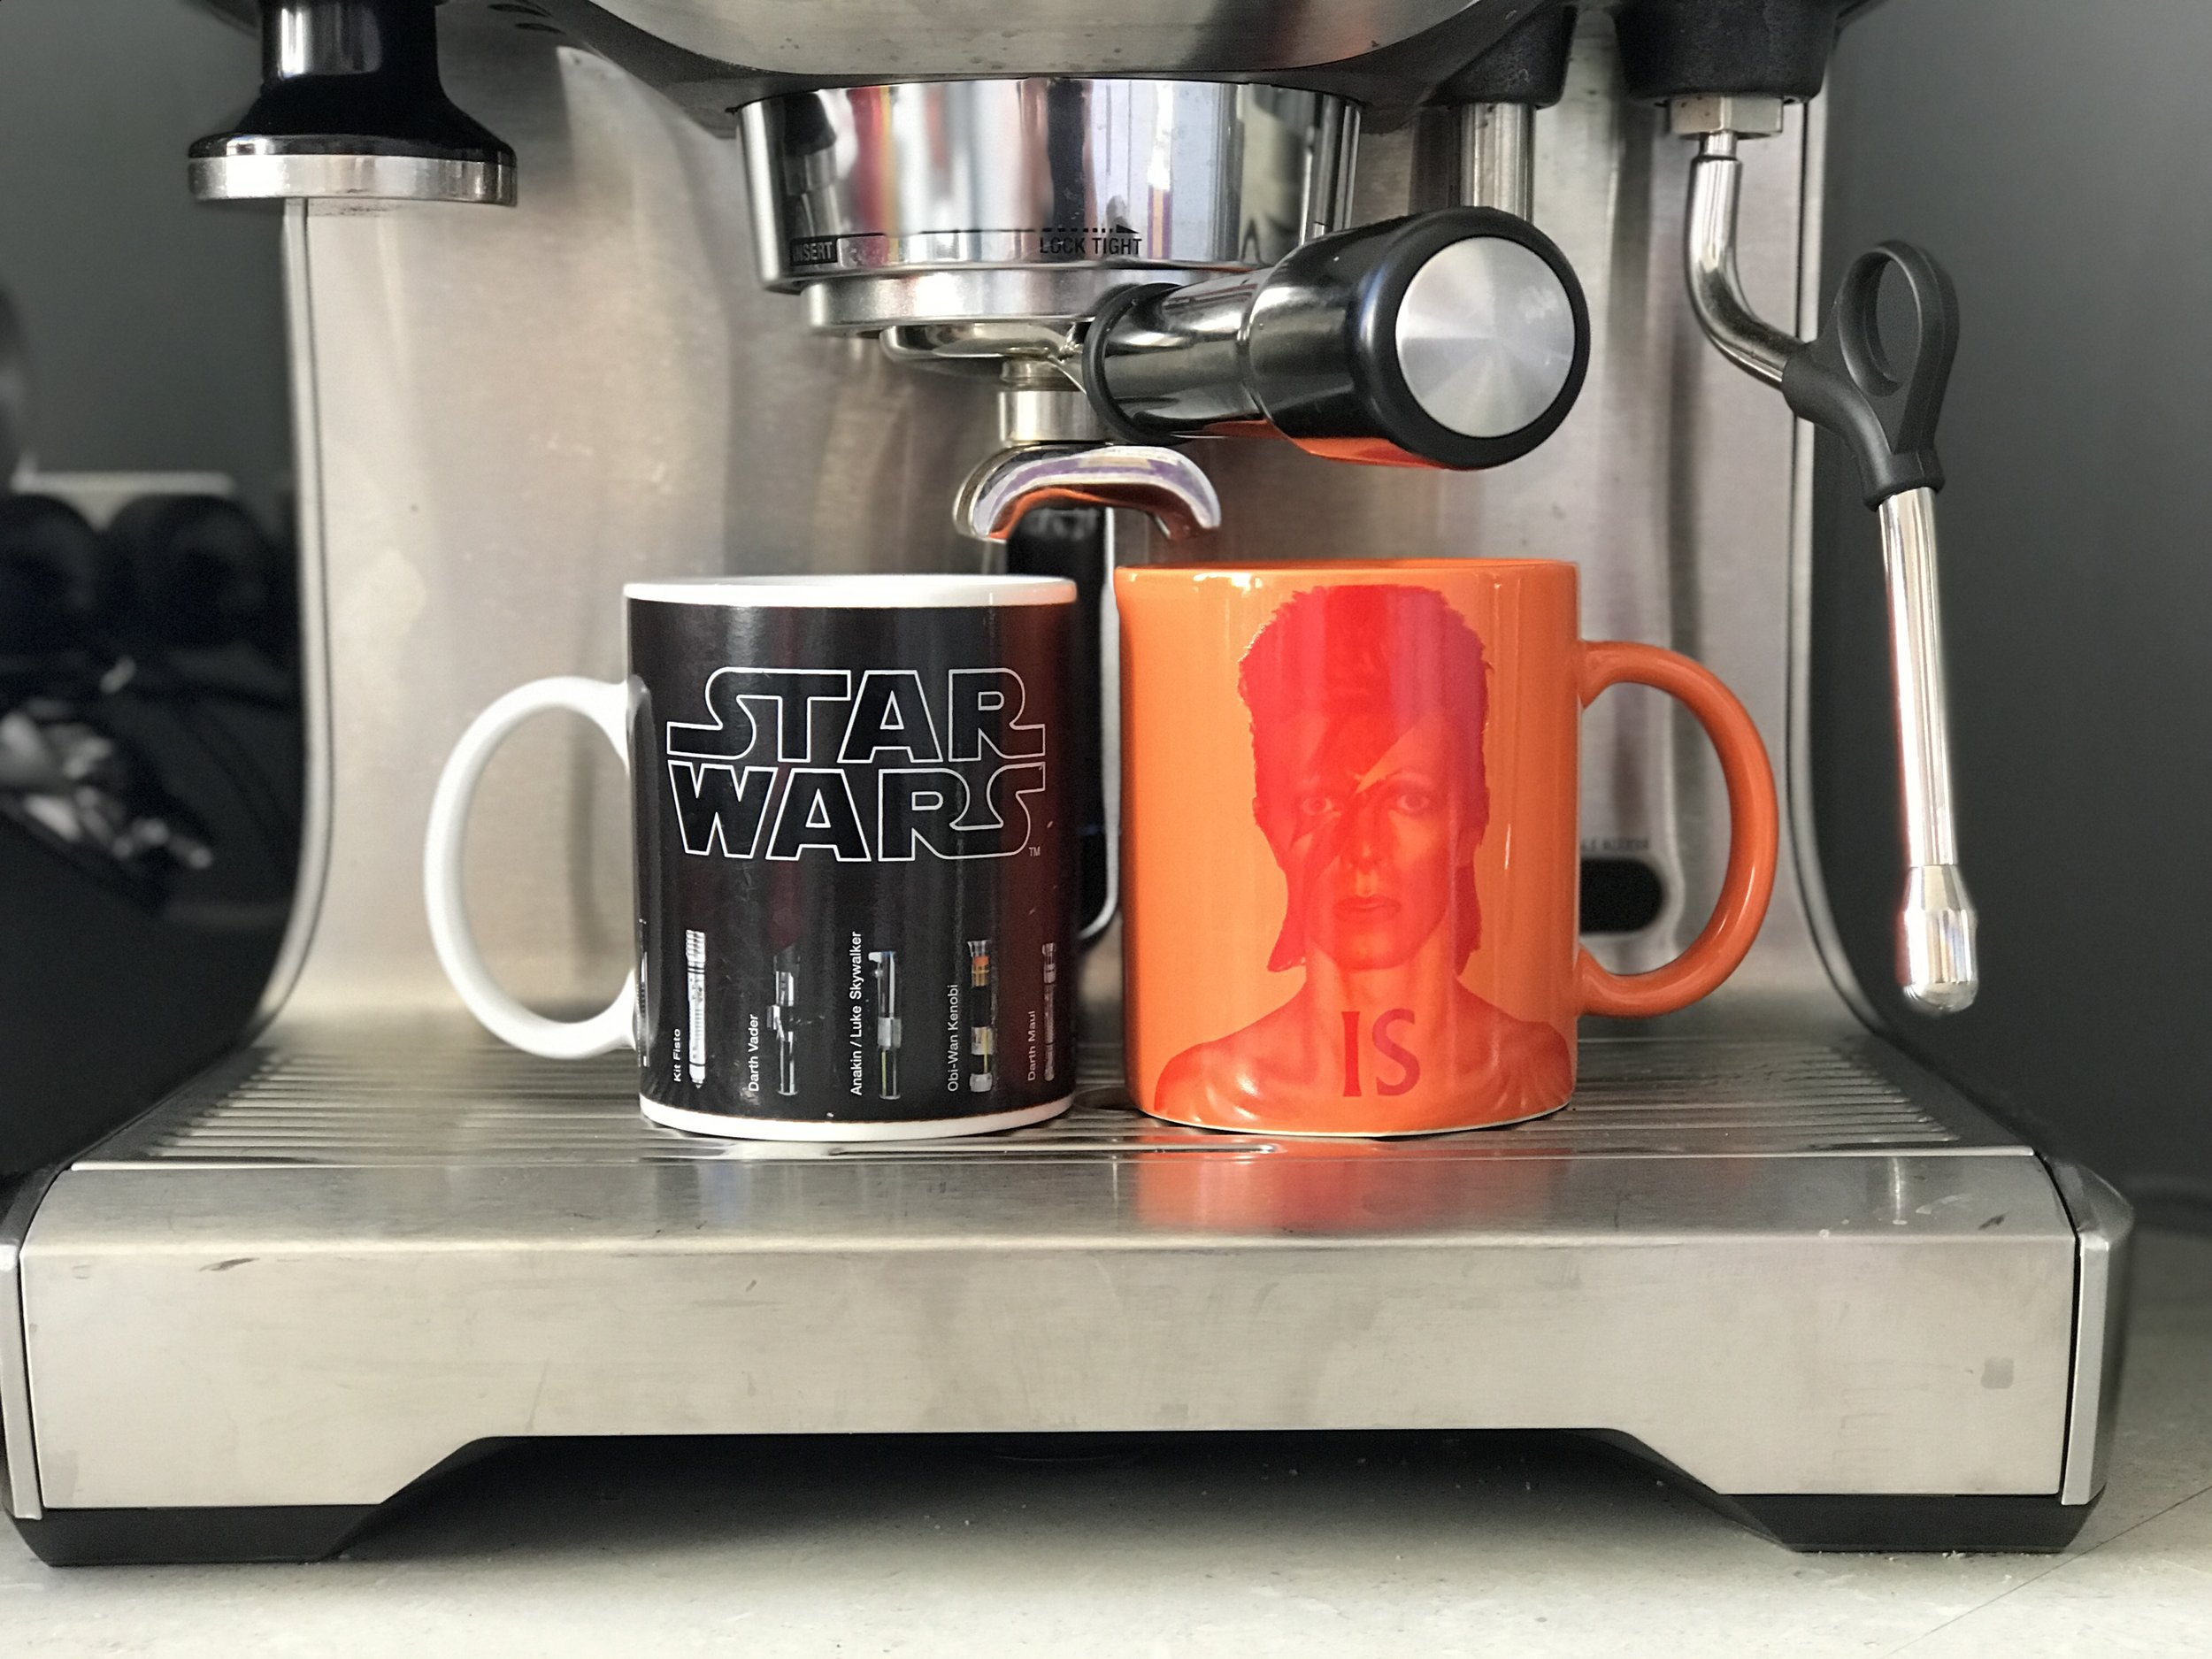 As long as I have enough space to put my coffee machine.... - Father and son mugs.